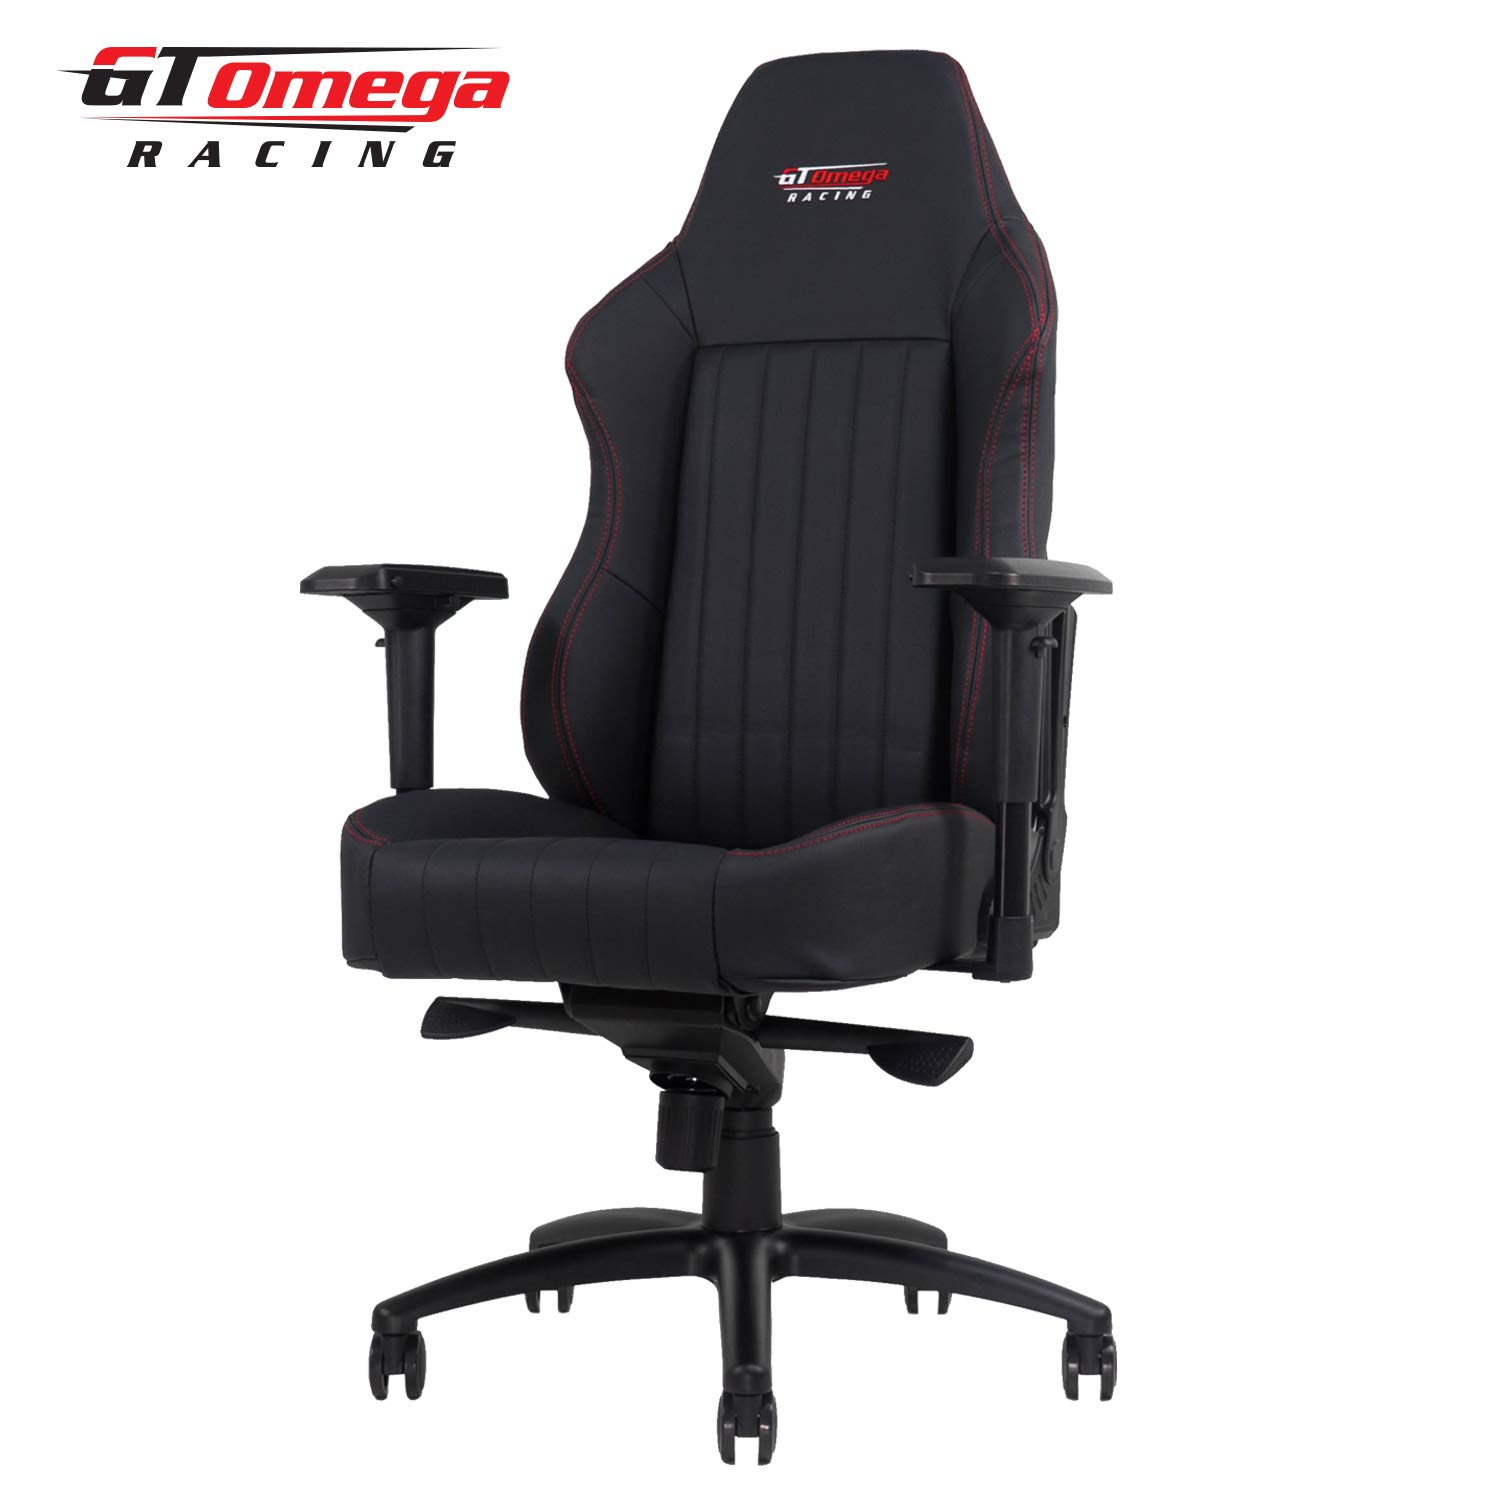 GT OMEGA EVO XL Racing Gaming Chair with Lumbar Support – Heavy Duty Ergonomic Office Desk Chair with 4D Adjustable Armrest Recliner – PVC Leather Esport Seat for Racing Console – Black